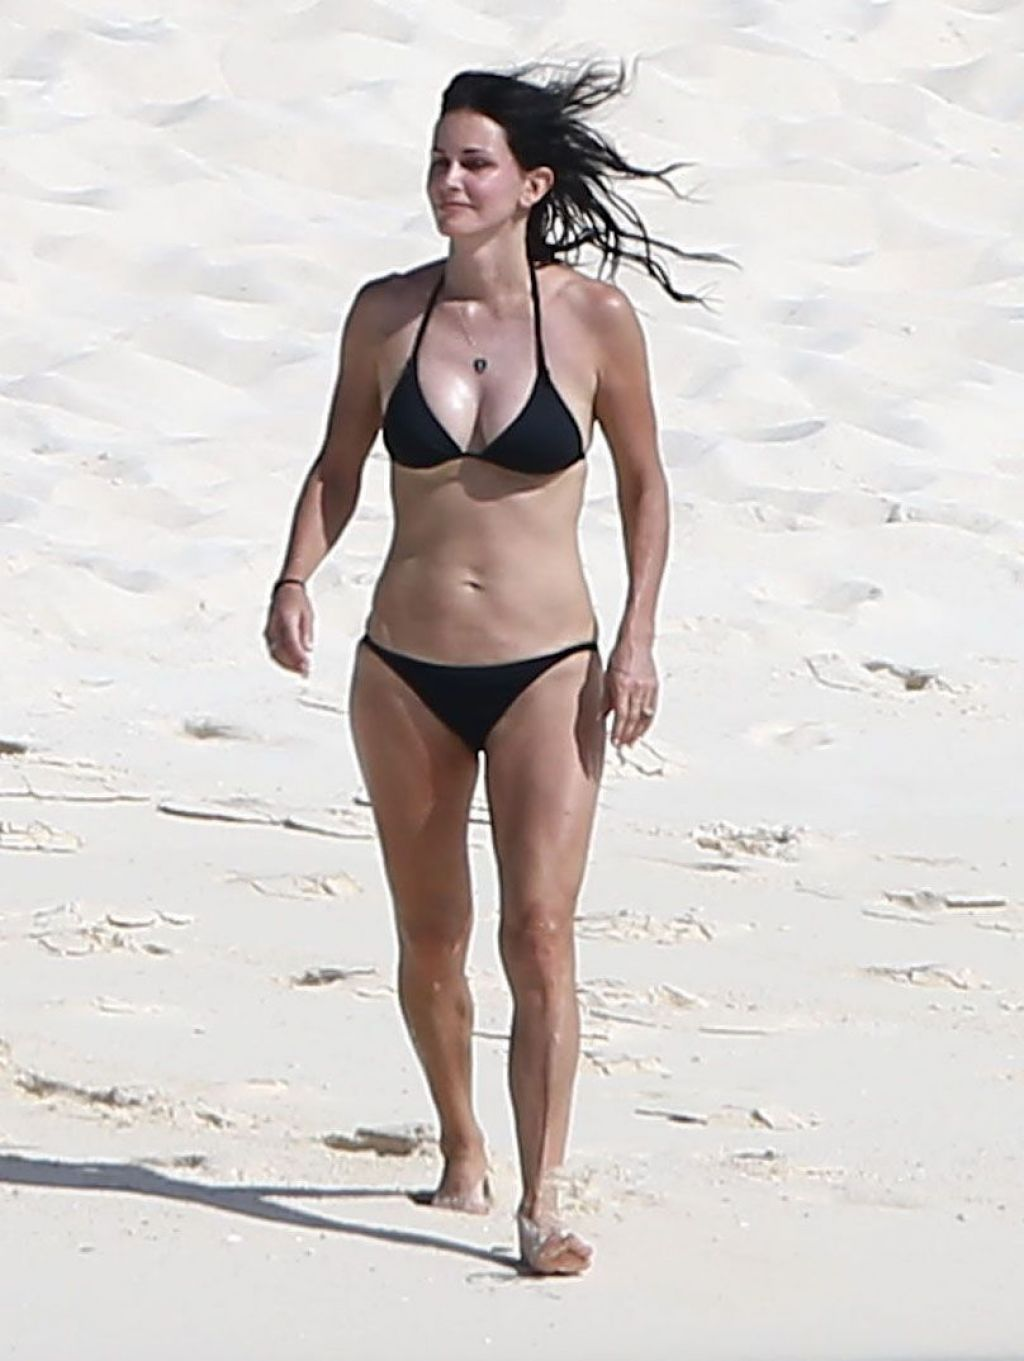 Courteney Cox Wearing A Bikini On The Beach In Turks And